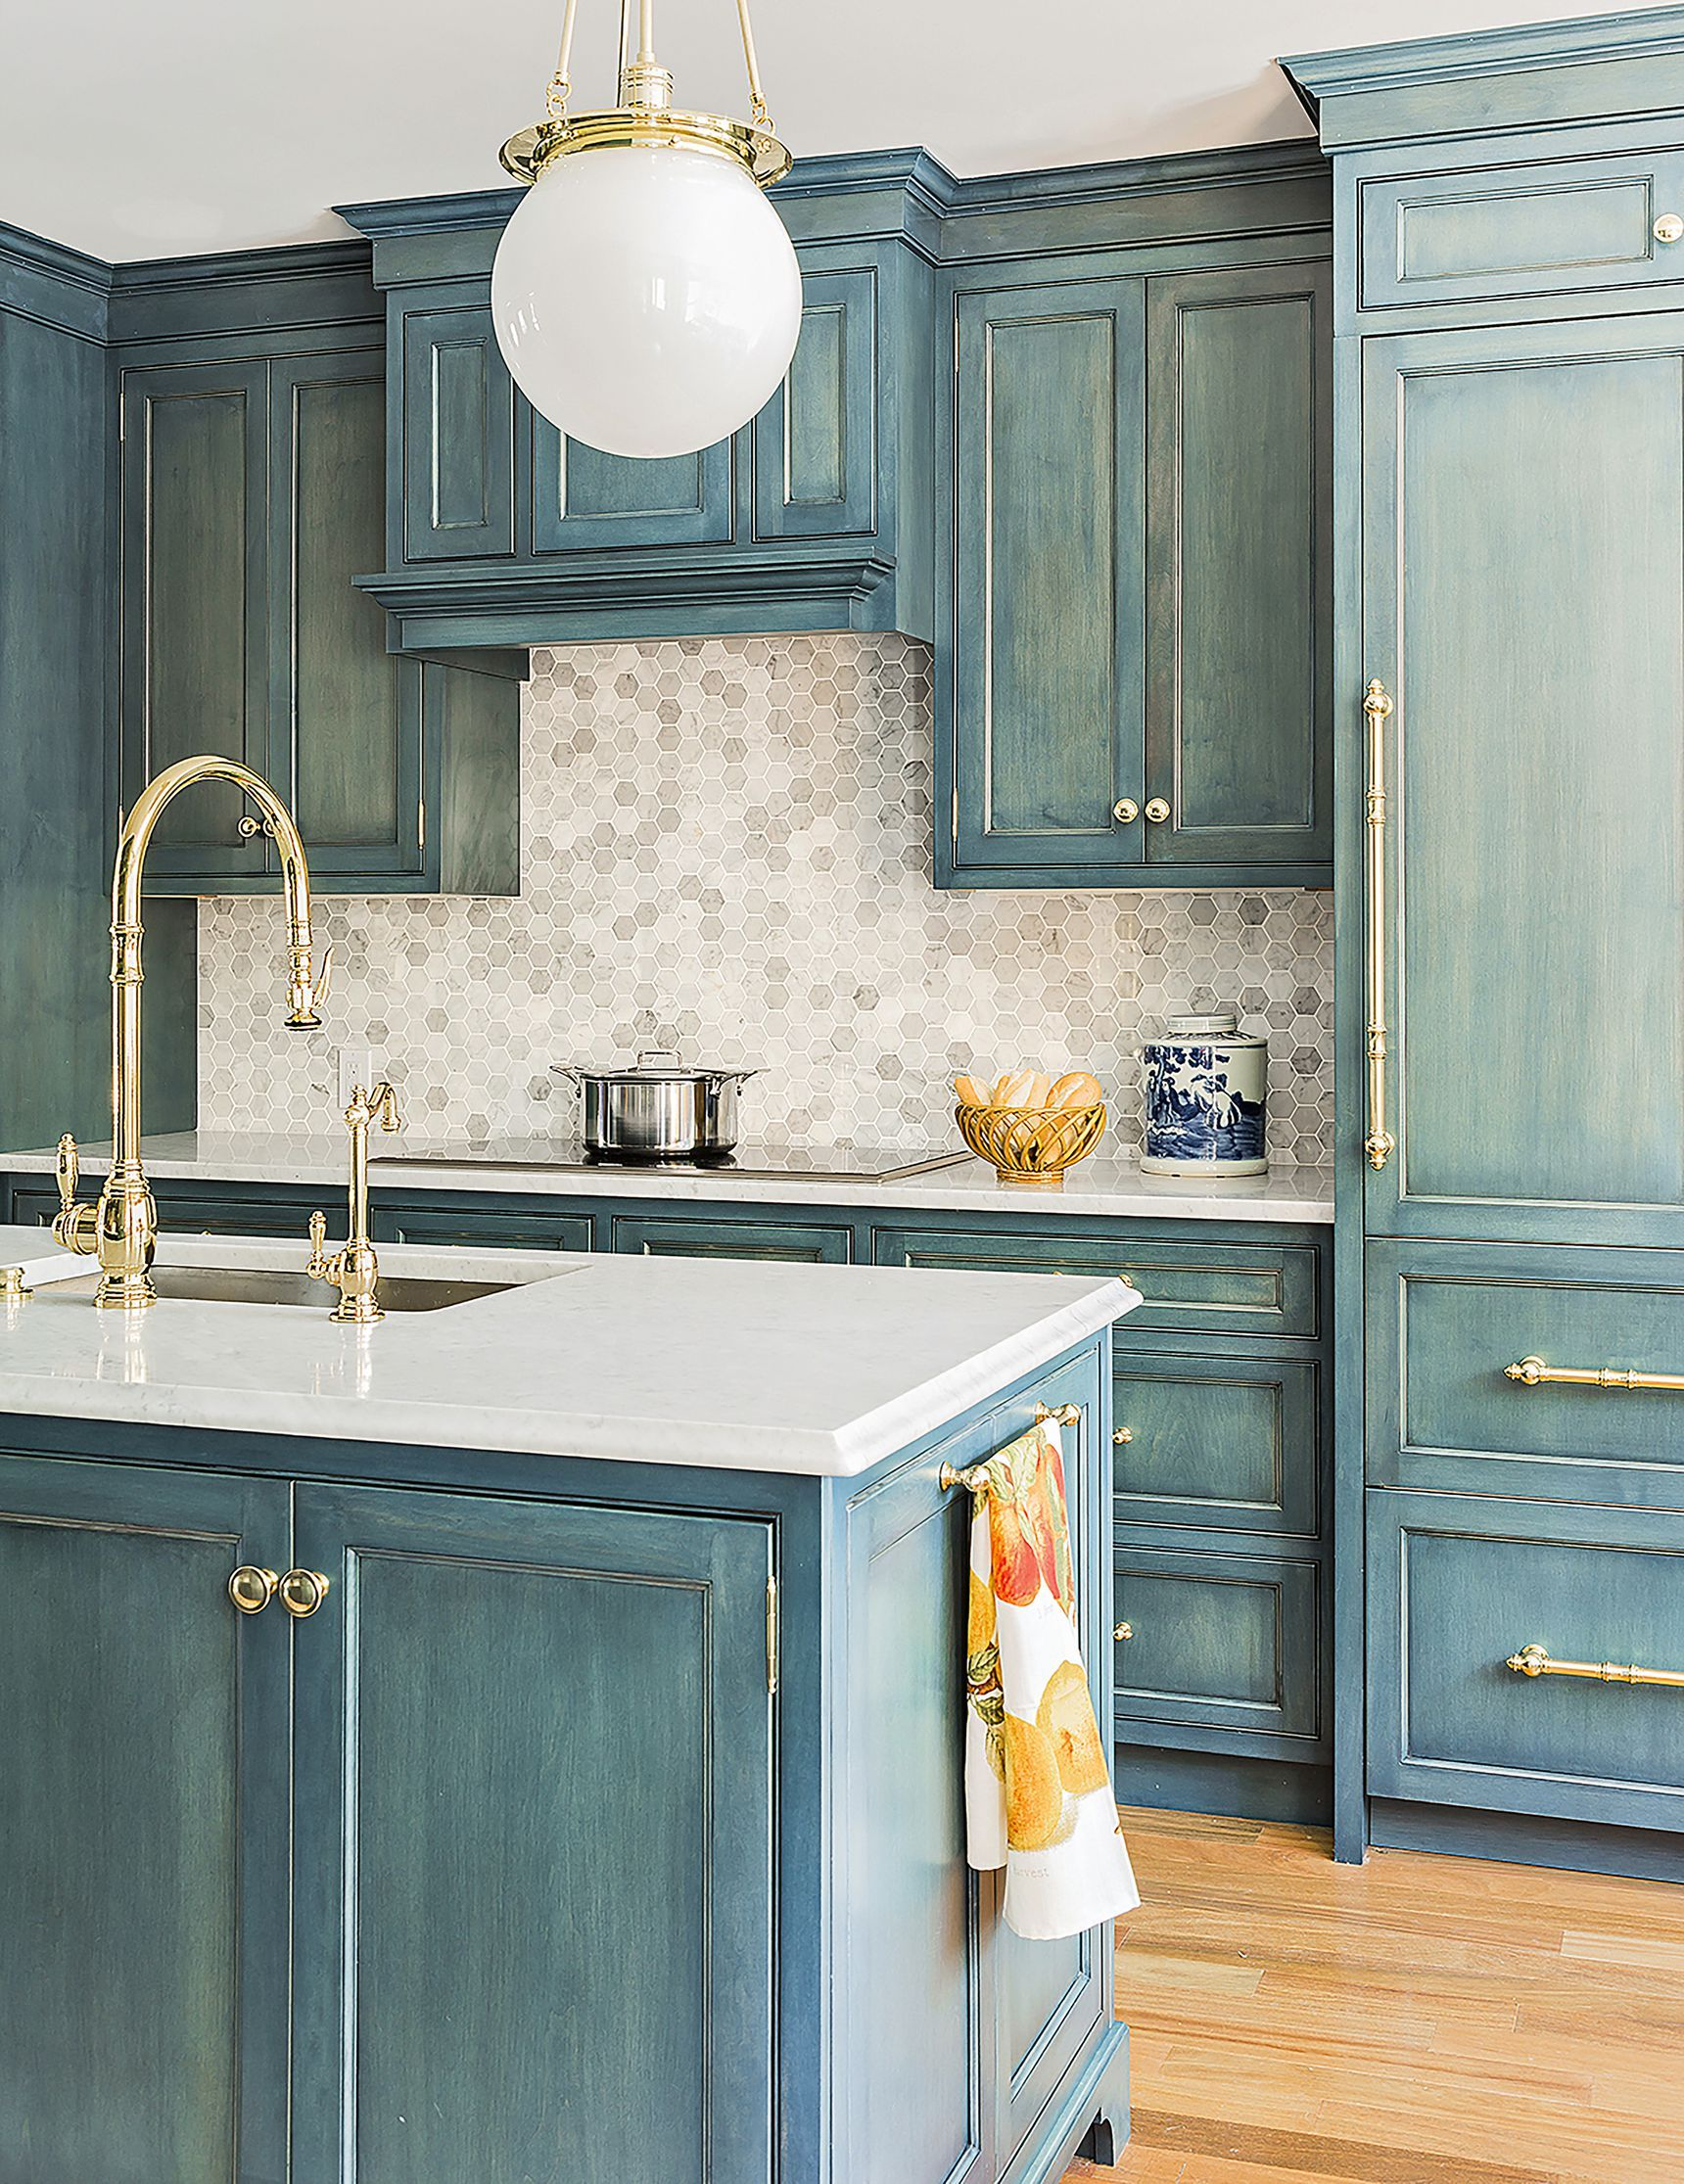 Read This Before You Paint Your Kitchen Cabinets In 2020 Distressed Kitchen Cabinets Turquoise Kitchen Cabinets Beautiful Kitchen Cabinets